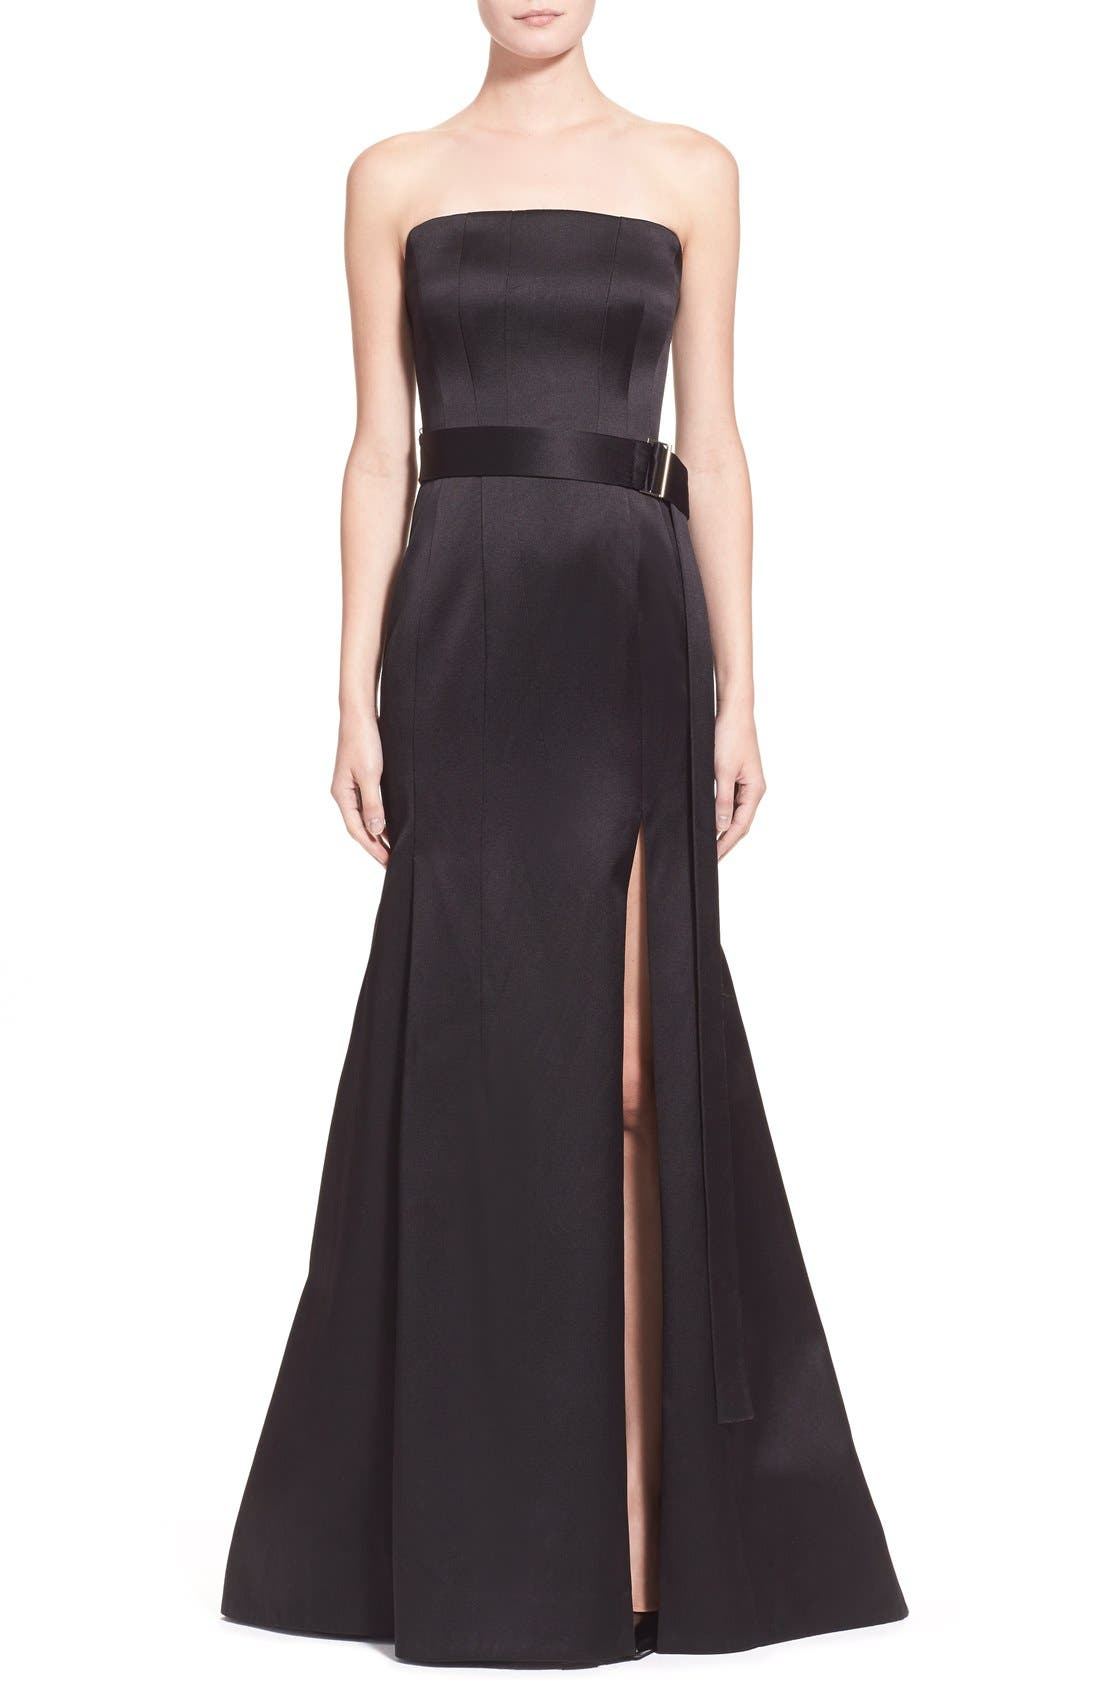 Alternate Image 1 Selected - Jason Wu 'Reese' Strapless Satin Twill Gown